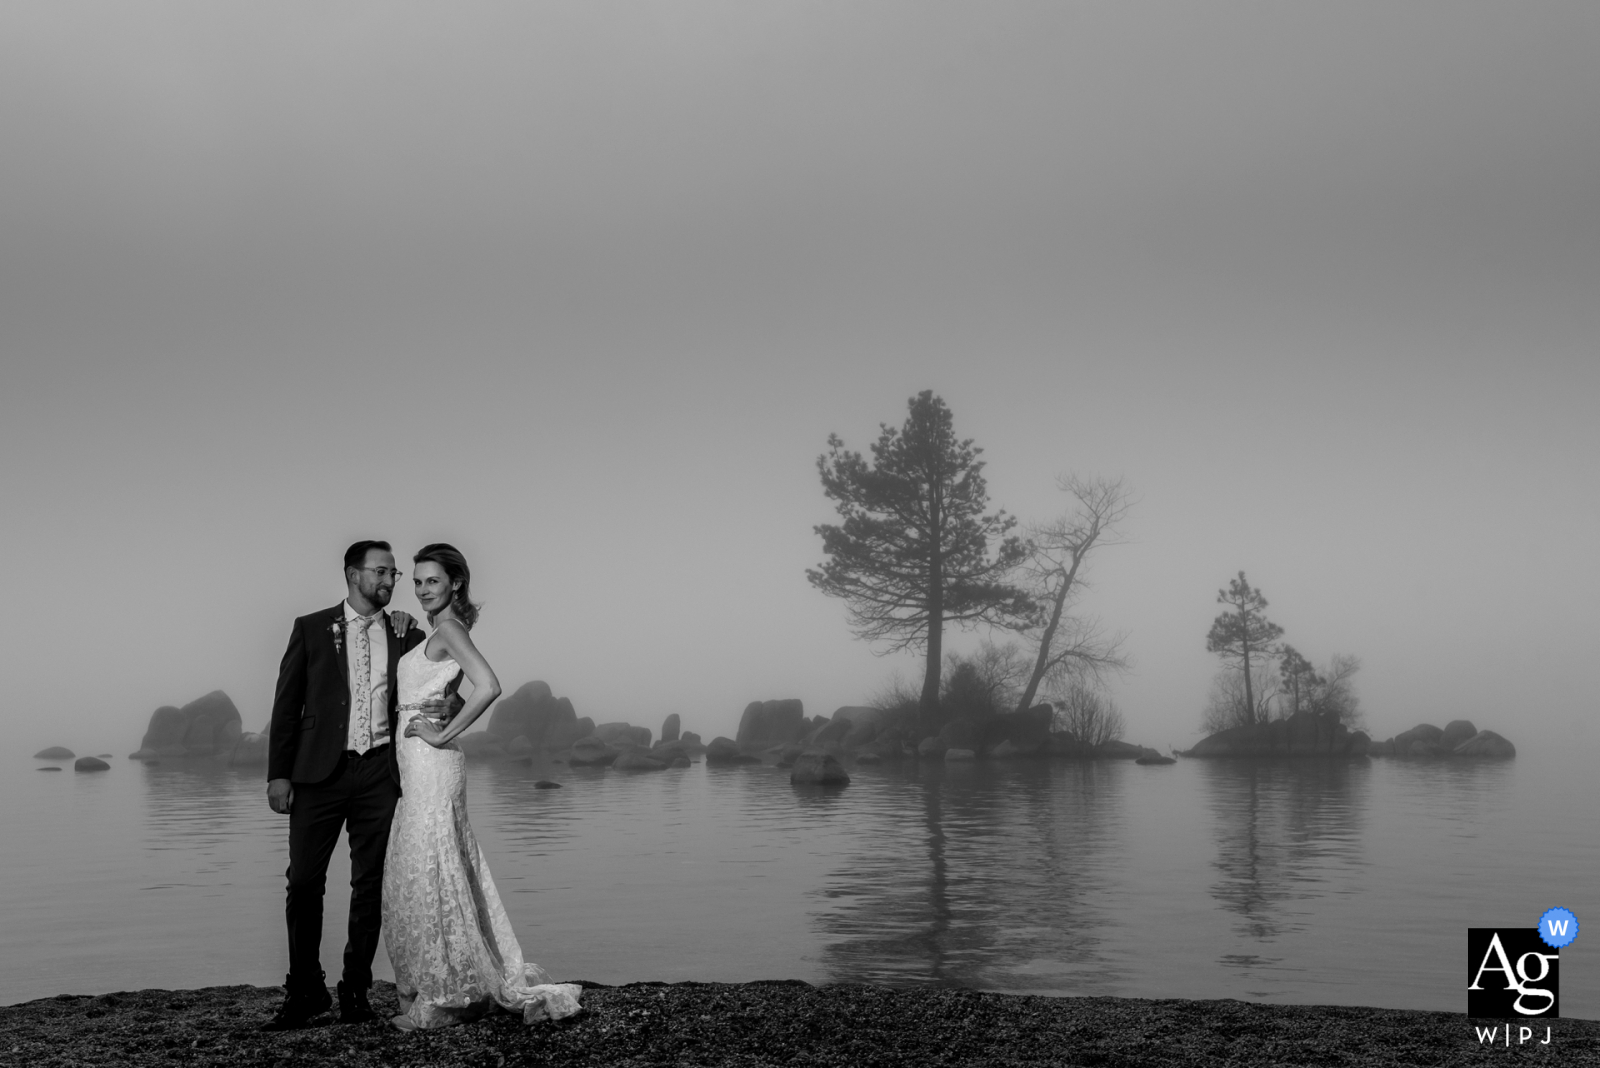 A bride and groom pose on the shores of Lake Tahoe, Zephyr Cove, surrounded by thick fog.